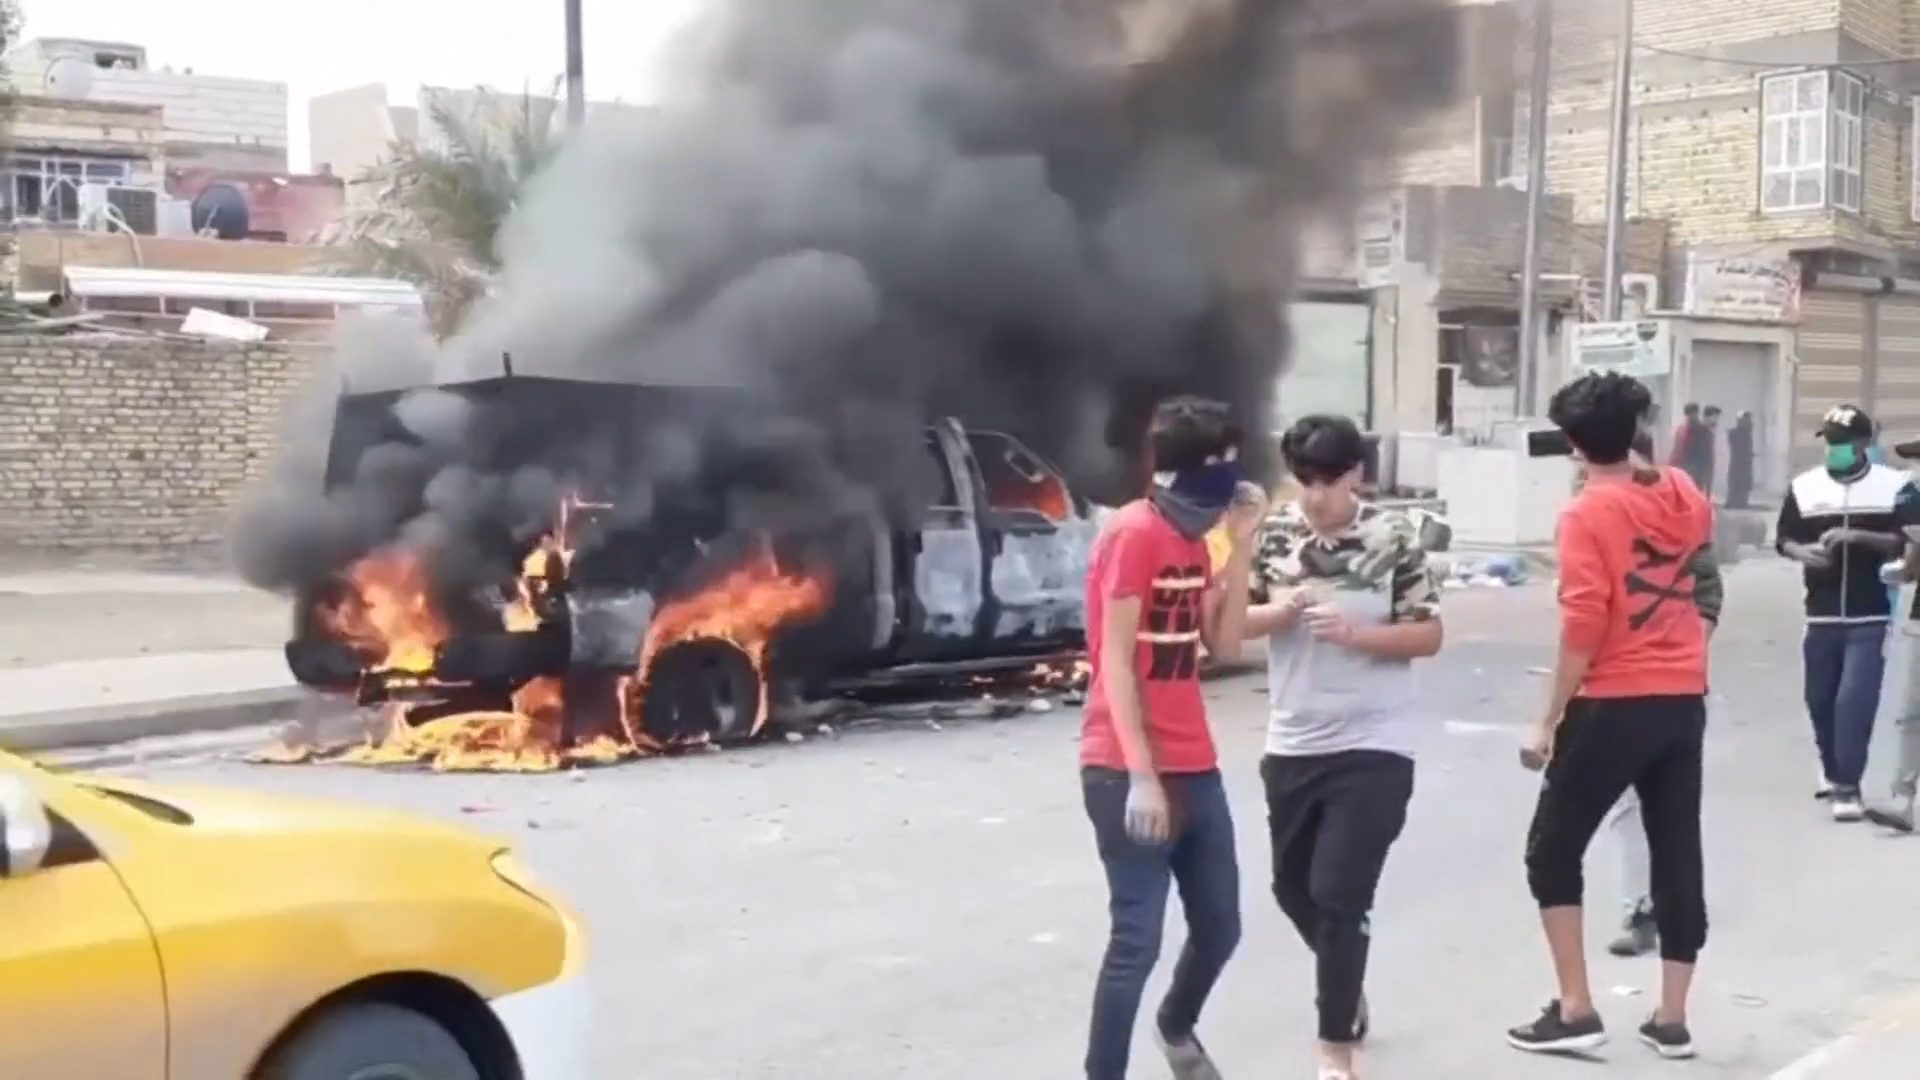 Iraq PM to resign after hundreds killed in protests – Channel 4 News